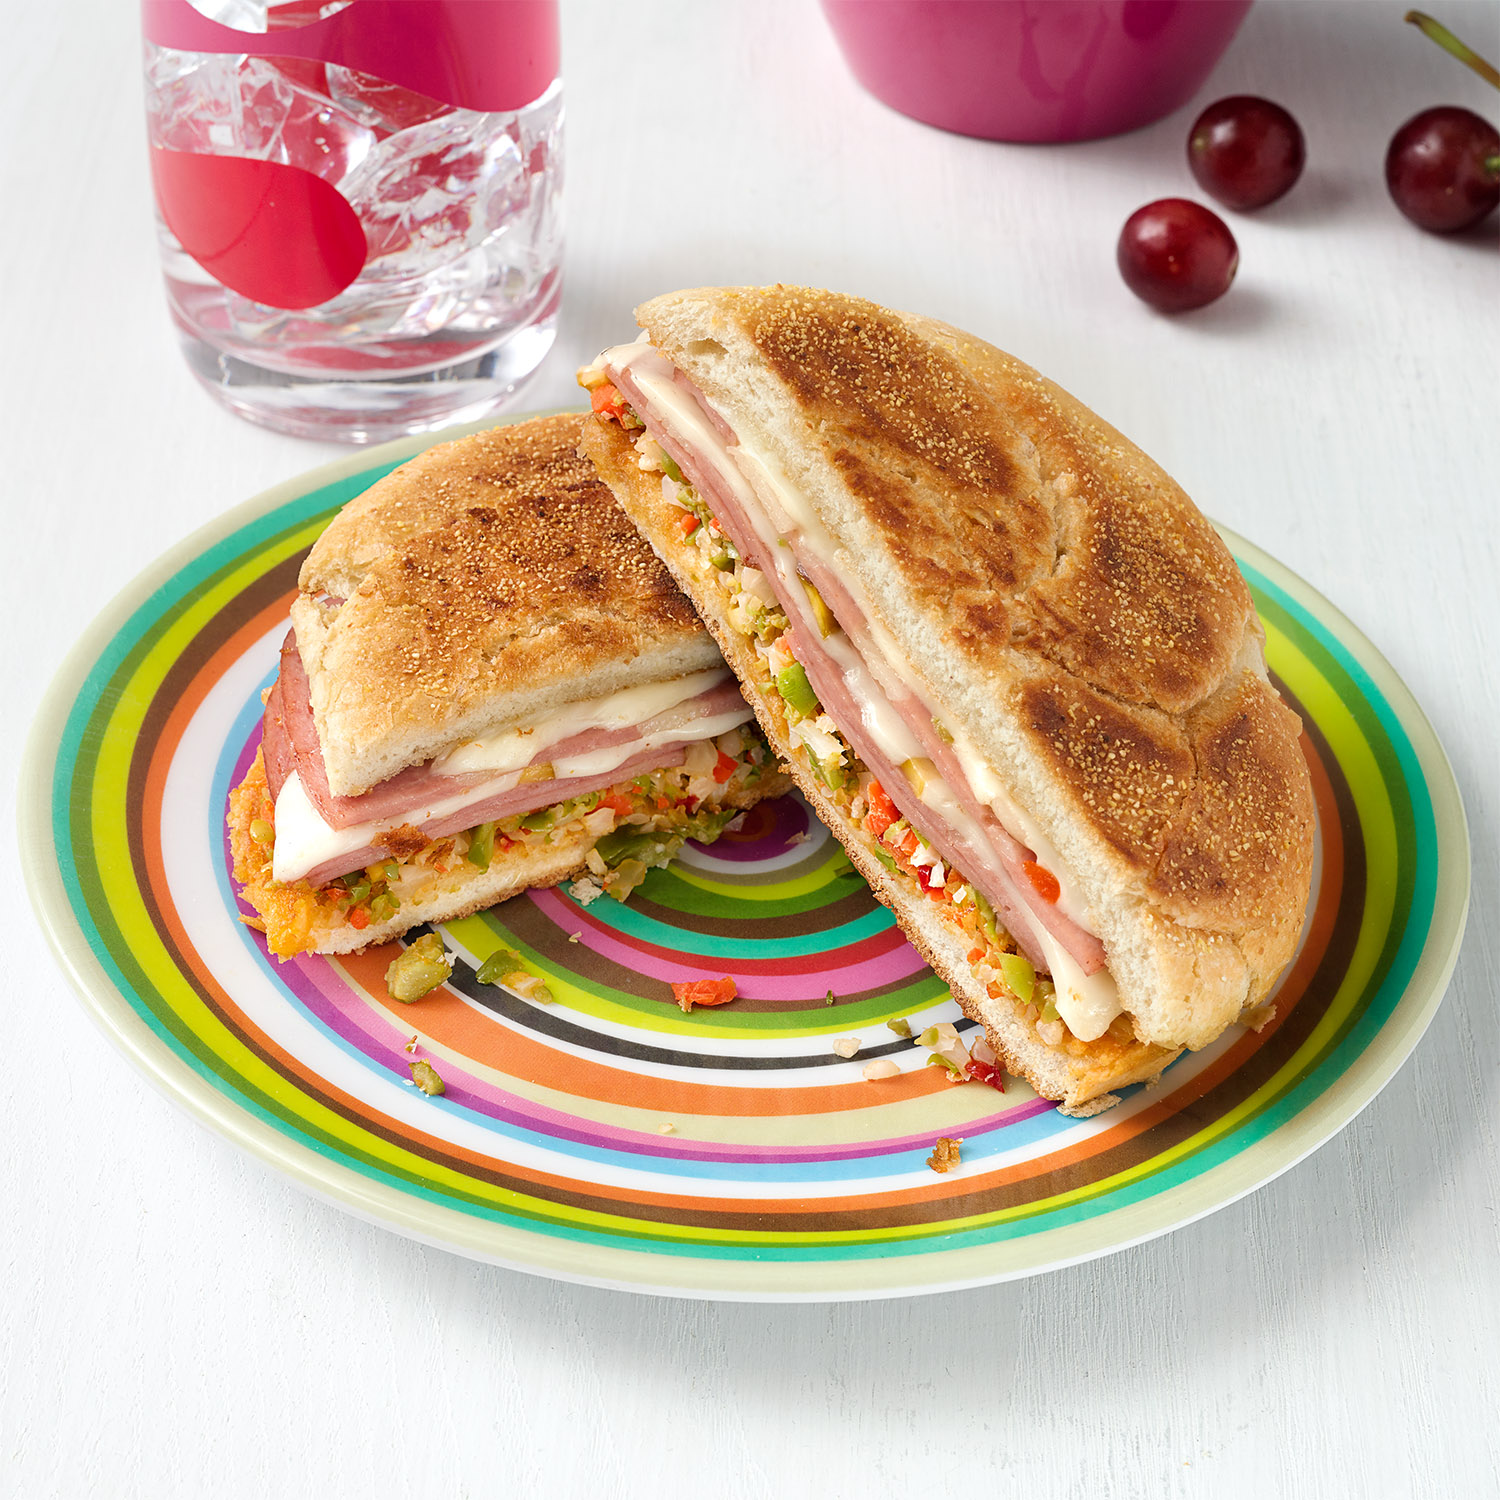 Fried Bologna Sandwiches with Olive Salad